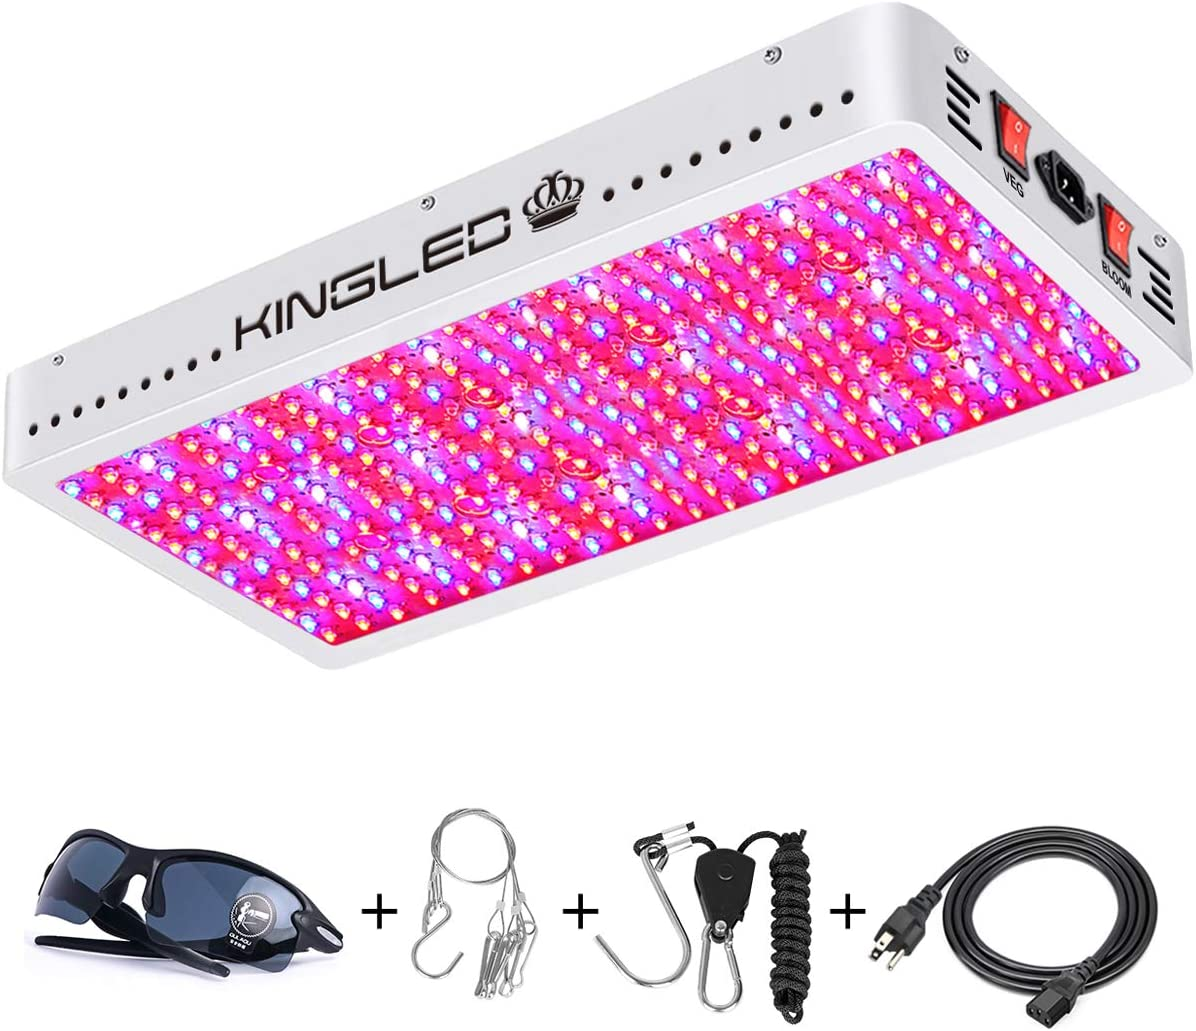 King Plus 4000W Double Chips LED Grow Light Full Spectrum for Greenhouse and Indoor Plant Flowering Growing 390pcs 10w LEDs